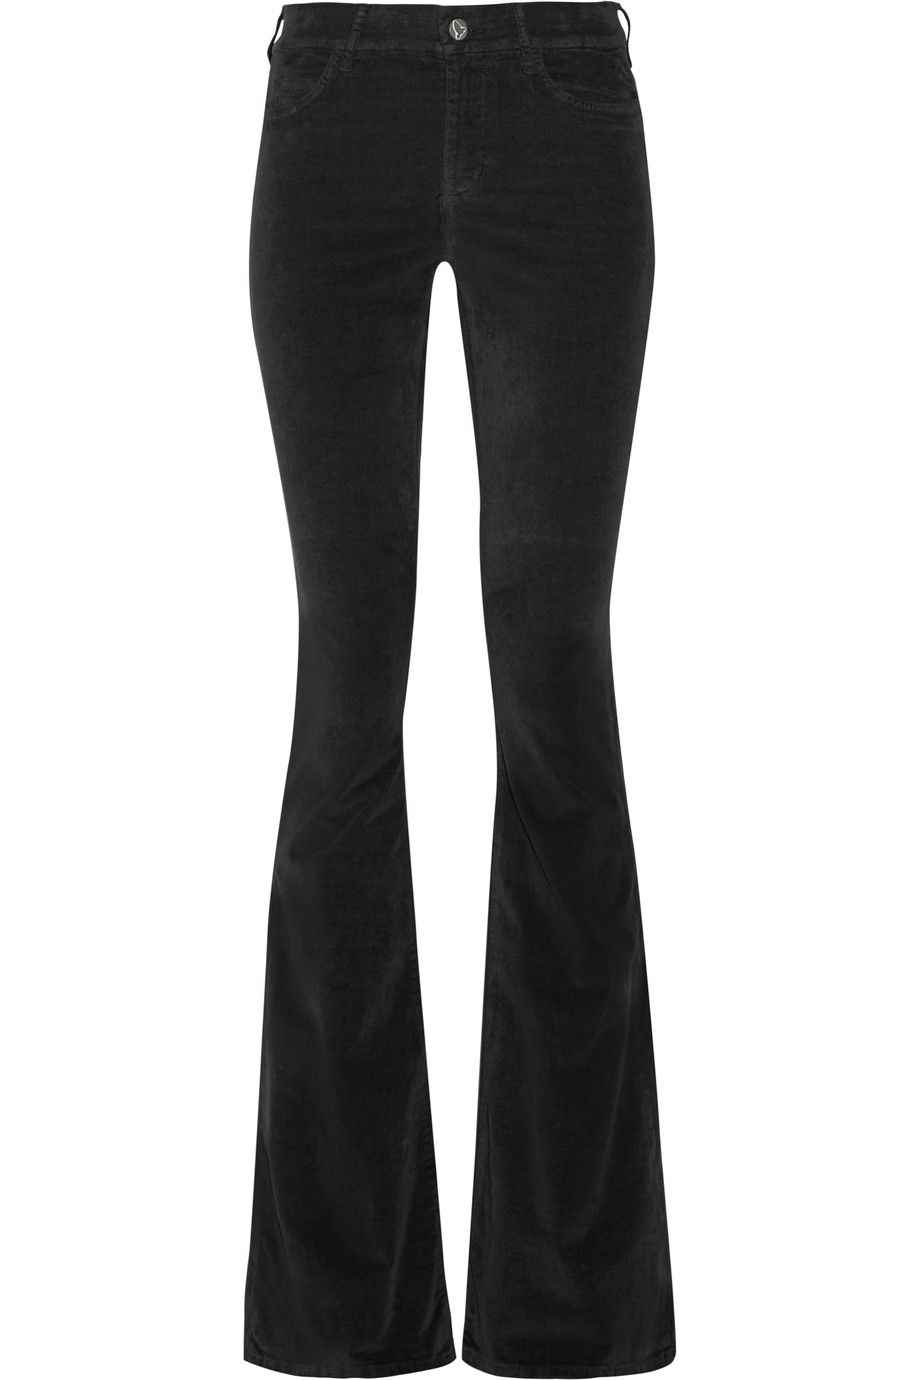 M.I.H JEANS Skinny Marrakesh Stretch-Velvet Mid-Rise Flared Jeans. #m.i.hjeans #cloth #jeans